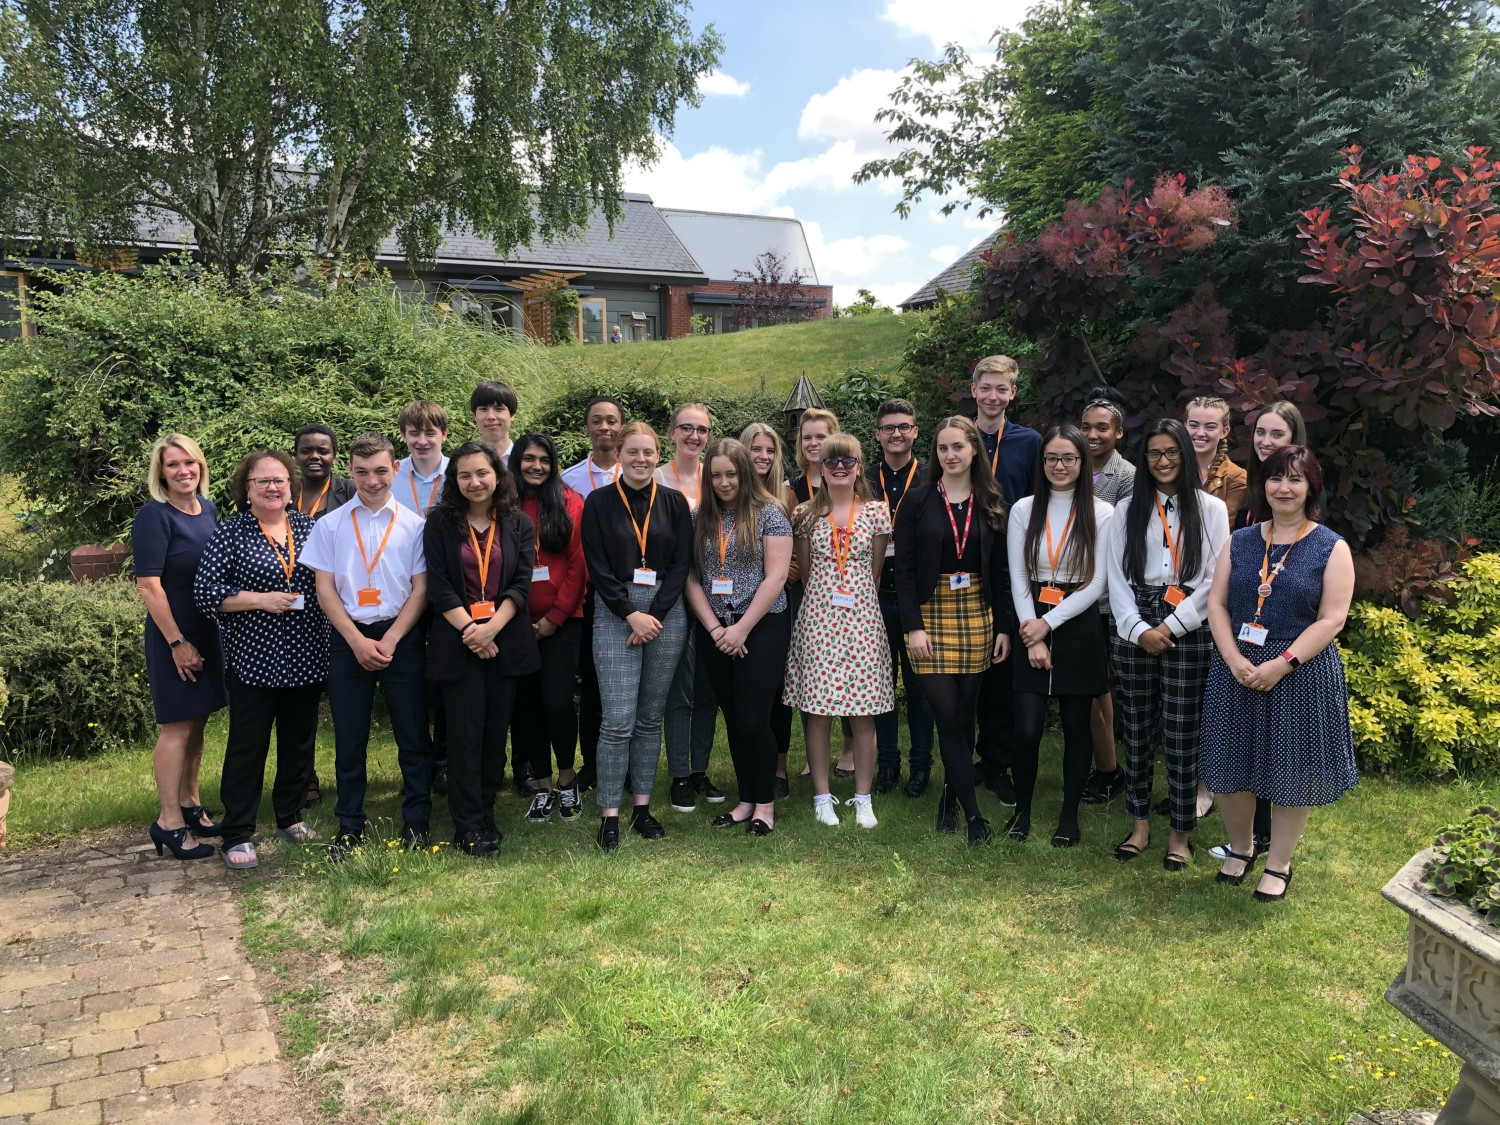 Health and social care workers of the future get a head start at St Giles Hospice Summer School